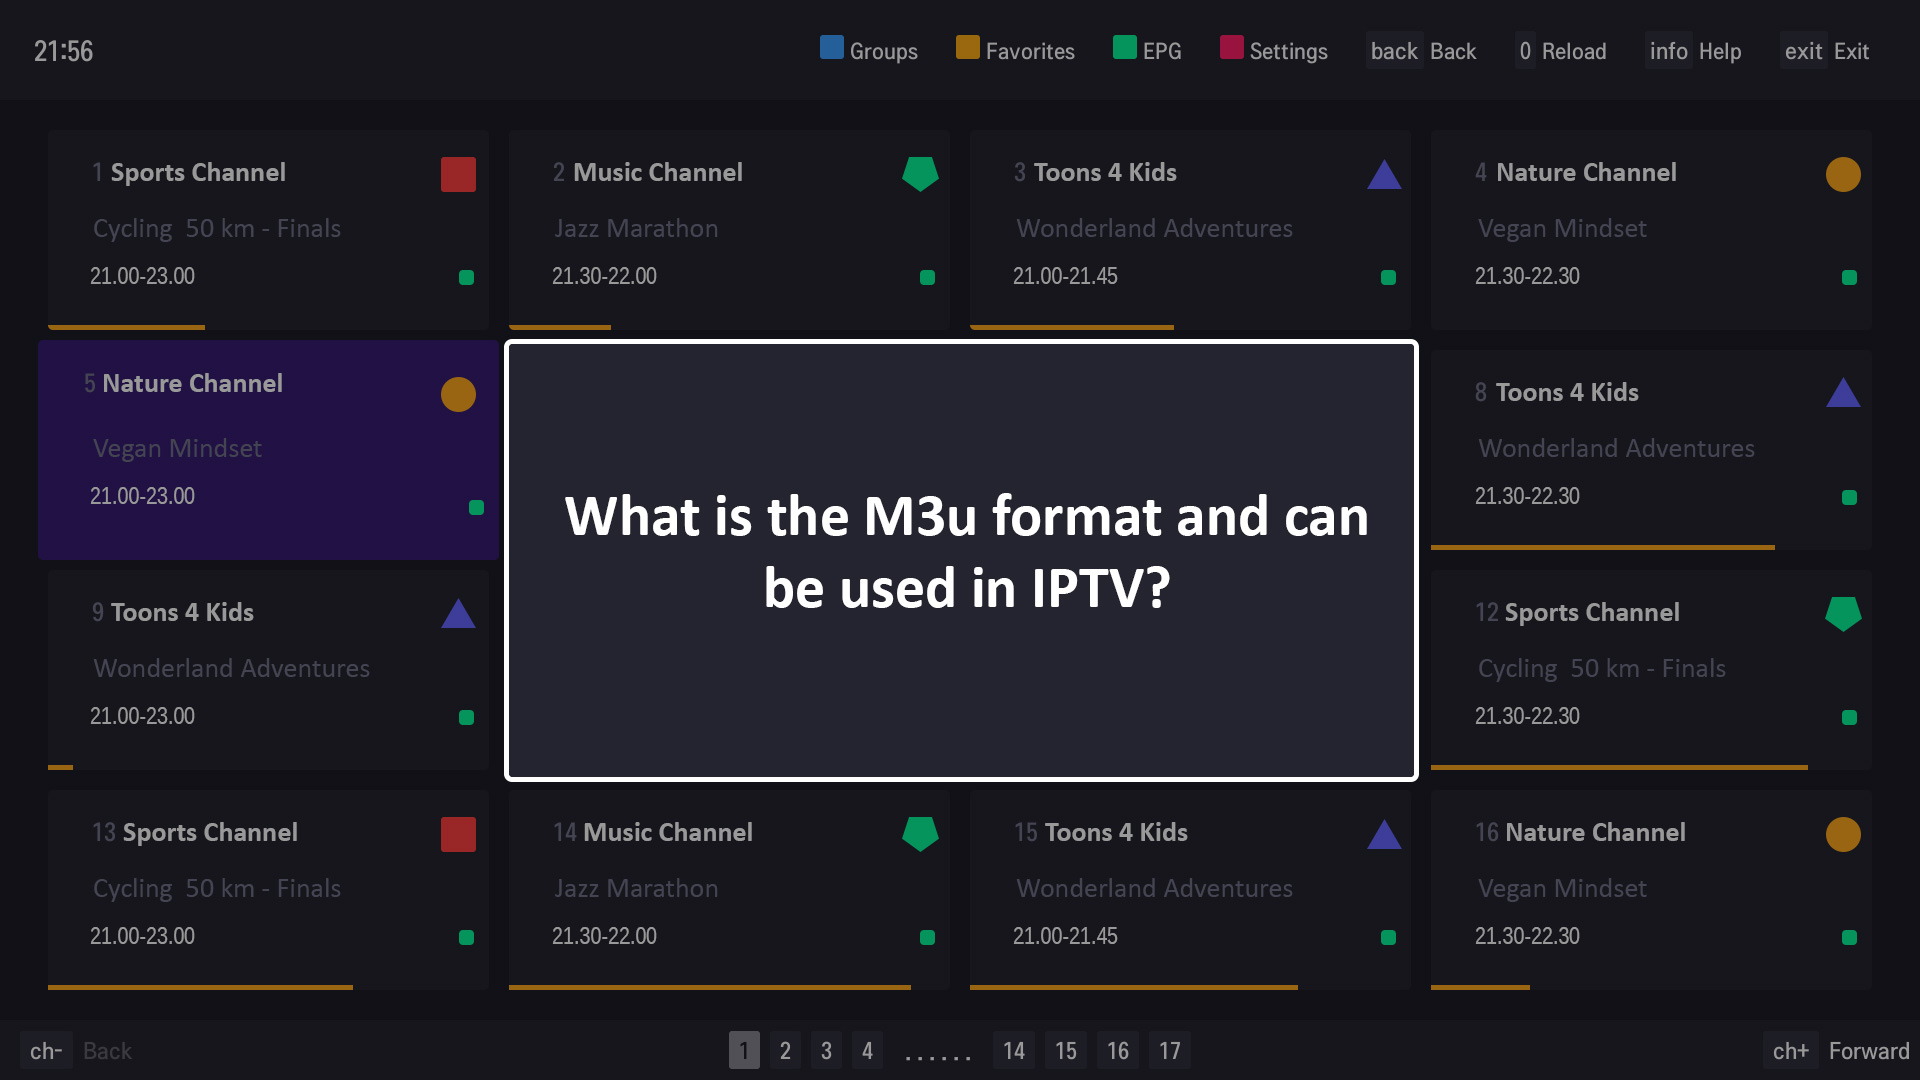 What is the M3u format and can be used in IPTV?